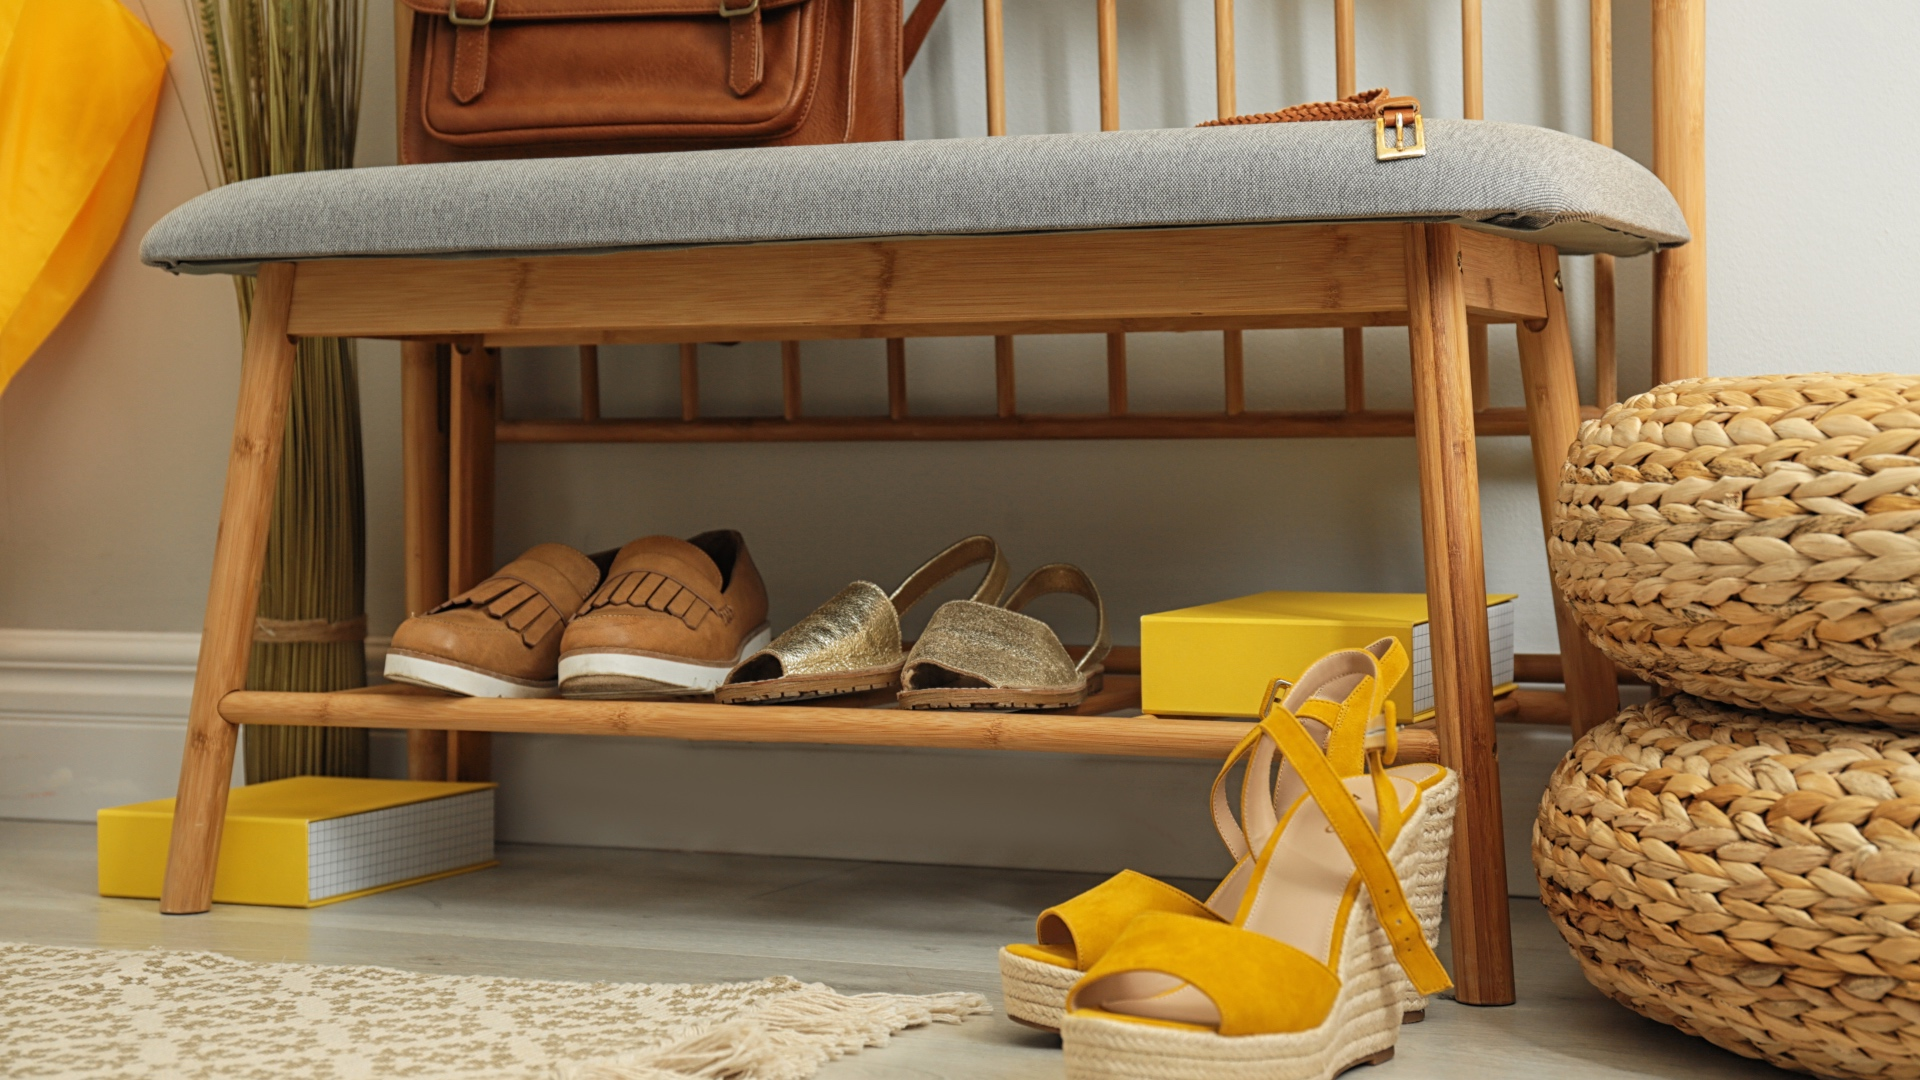 Solve Your Clutter Problem With Storage Benches